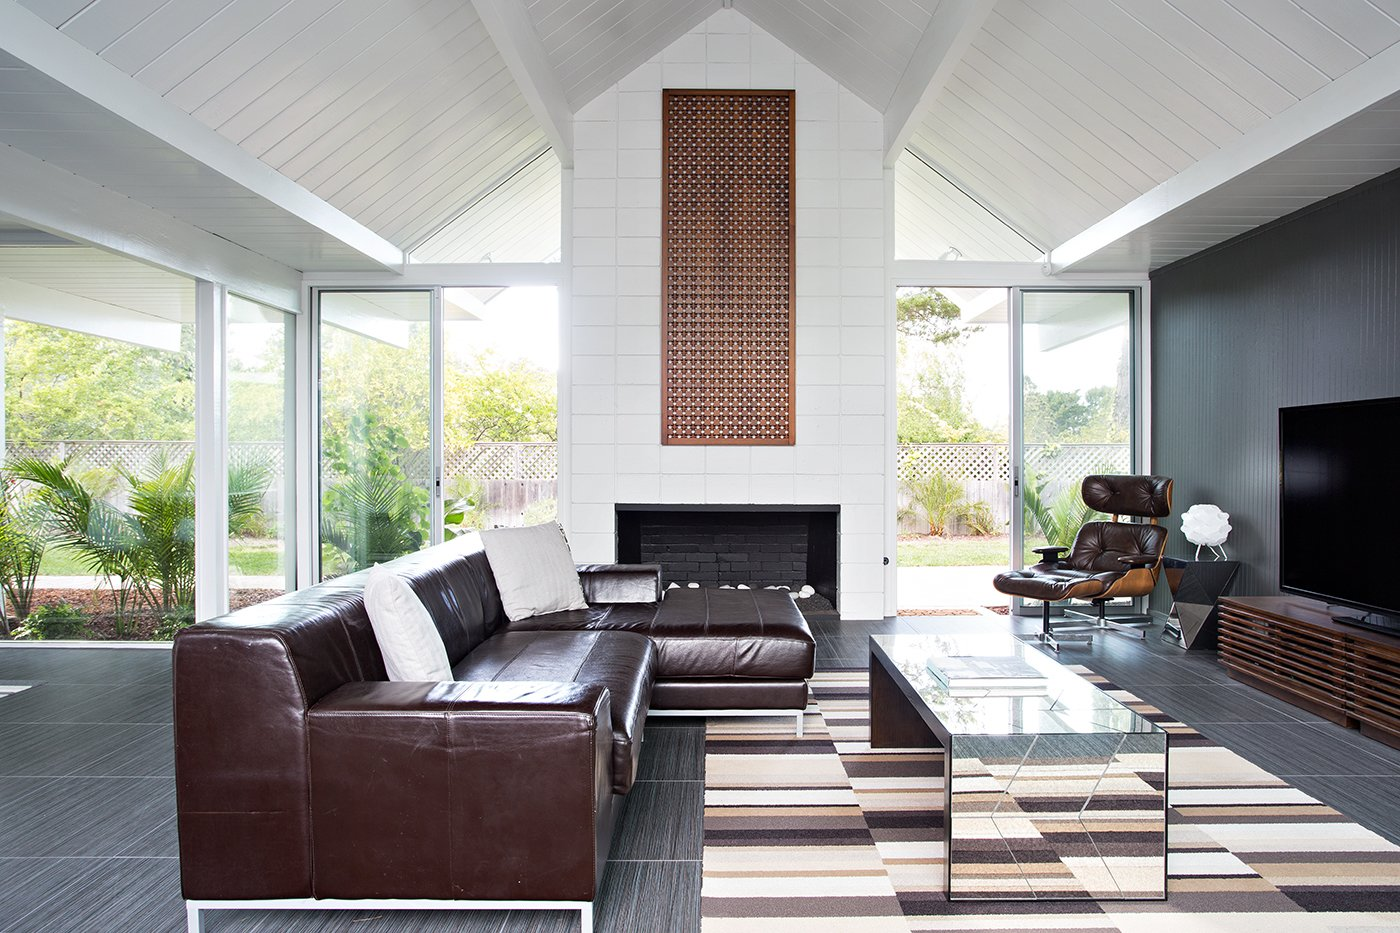 The combination of high ceilings and a cathedral-style design add character to the kitchen area. Photo by Mariko Reed. Tagged: Living Room, Sofa, and Recliner.  Modern Eichler Renovations by Allie Weiss from Eichler Remodel in Burlingame, California